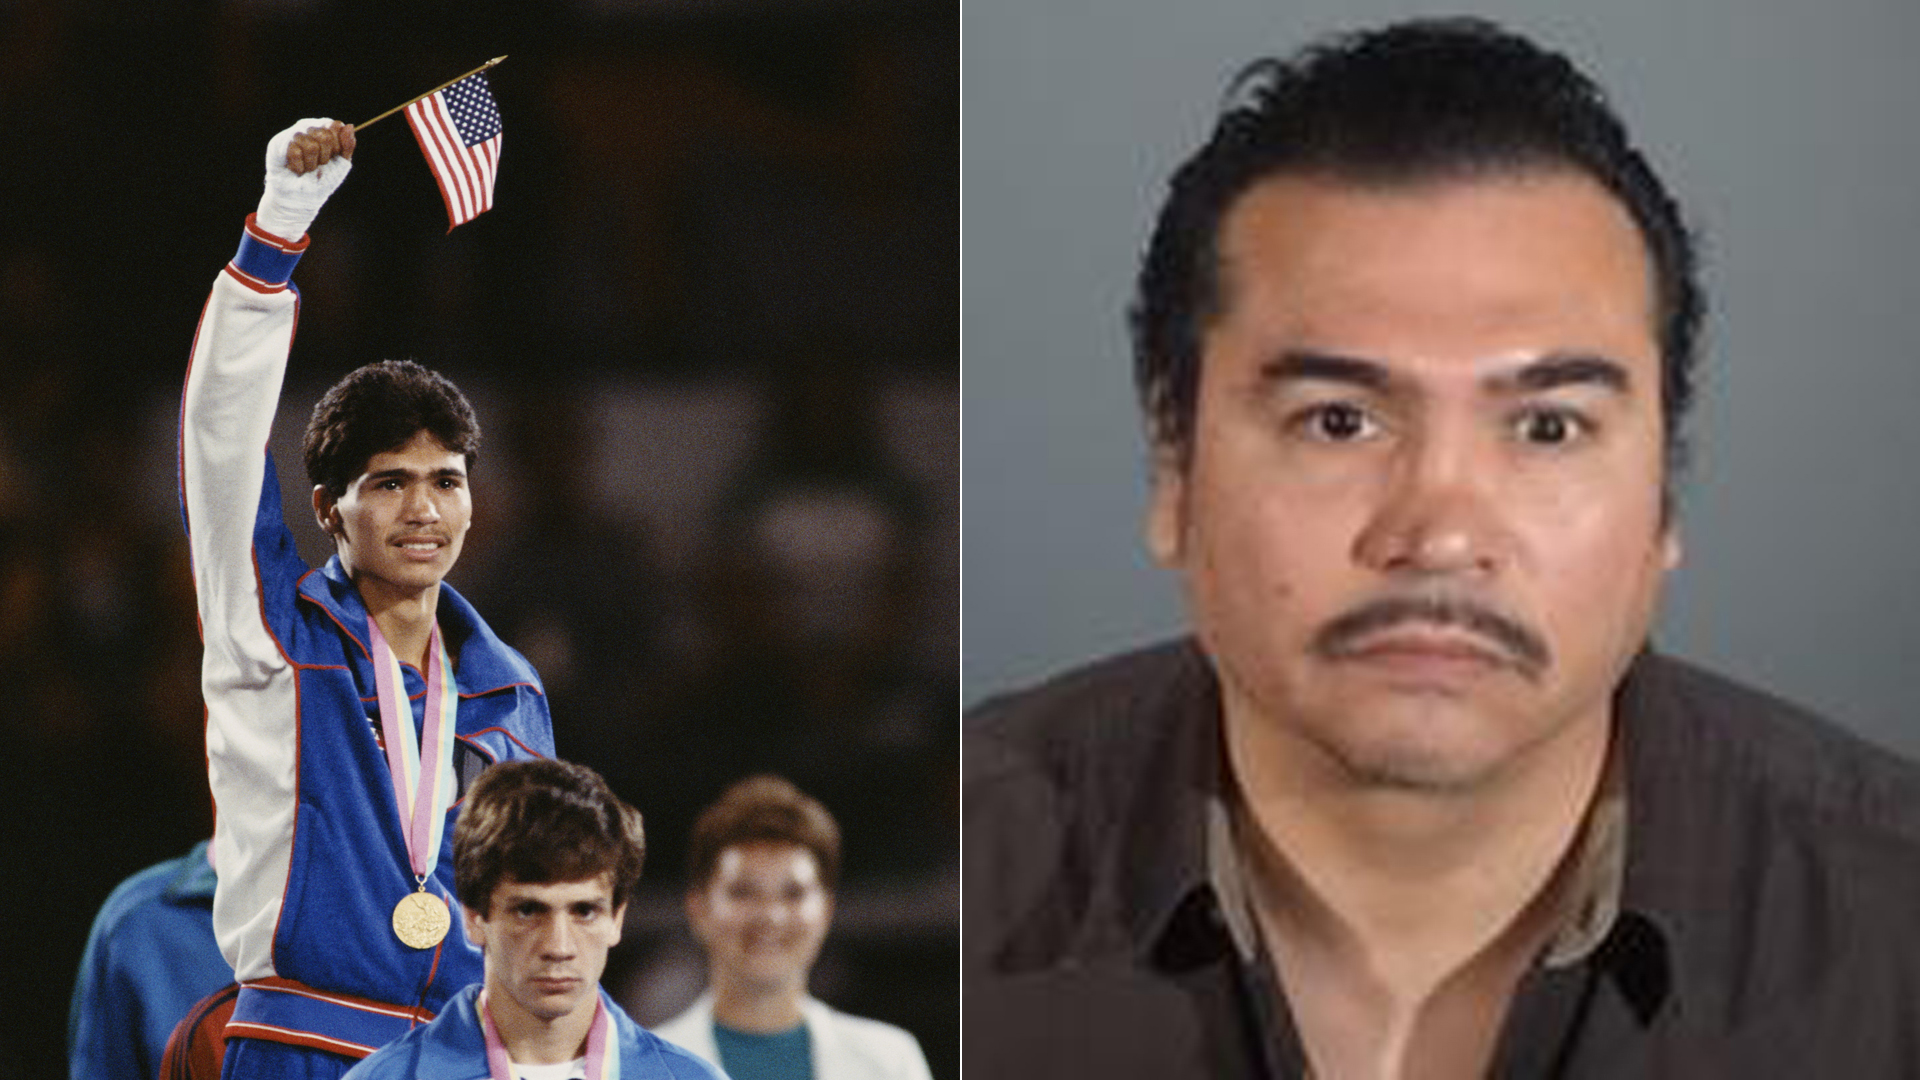 Paul Gonzales is seen in a file photo from the 1984 Olympics and in a mugshot released by authorities. (Credit: Getty Images / L.A. County Sheriff's Department)